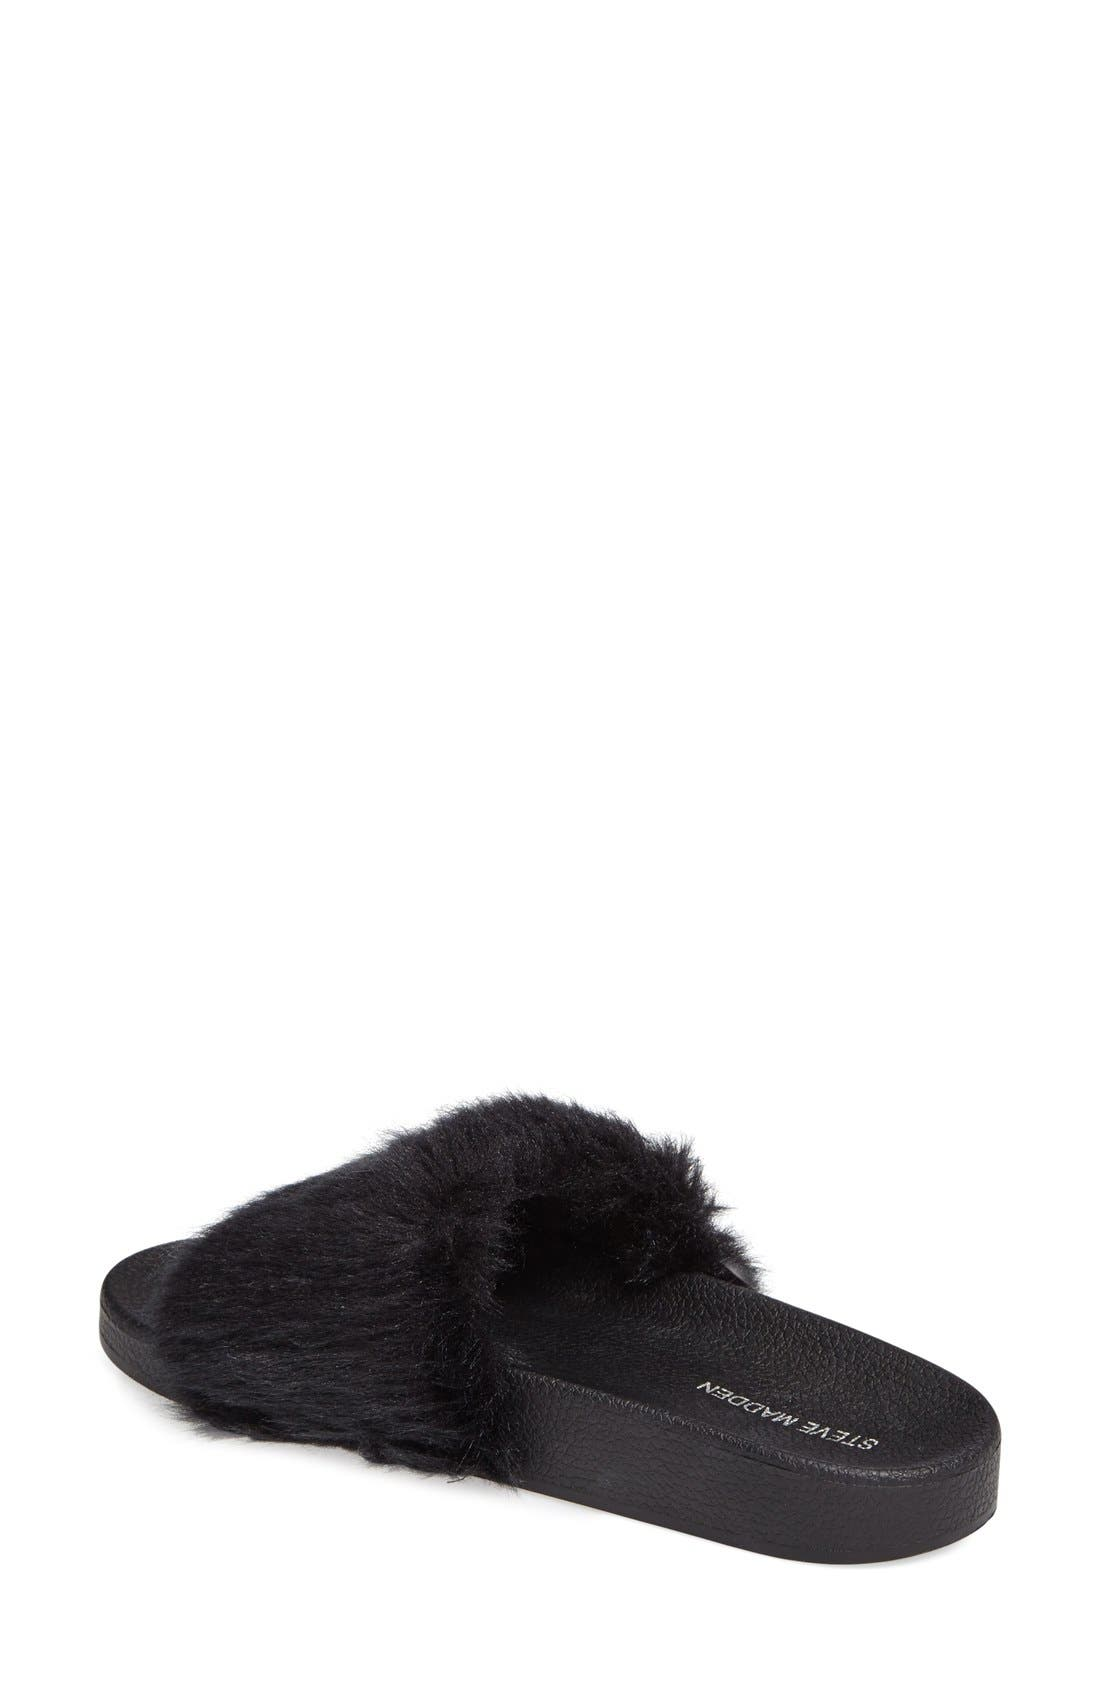 Alternate Image 2  - Steve Madden Softey Slide (Women)